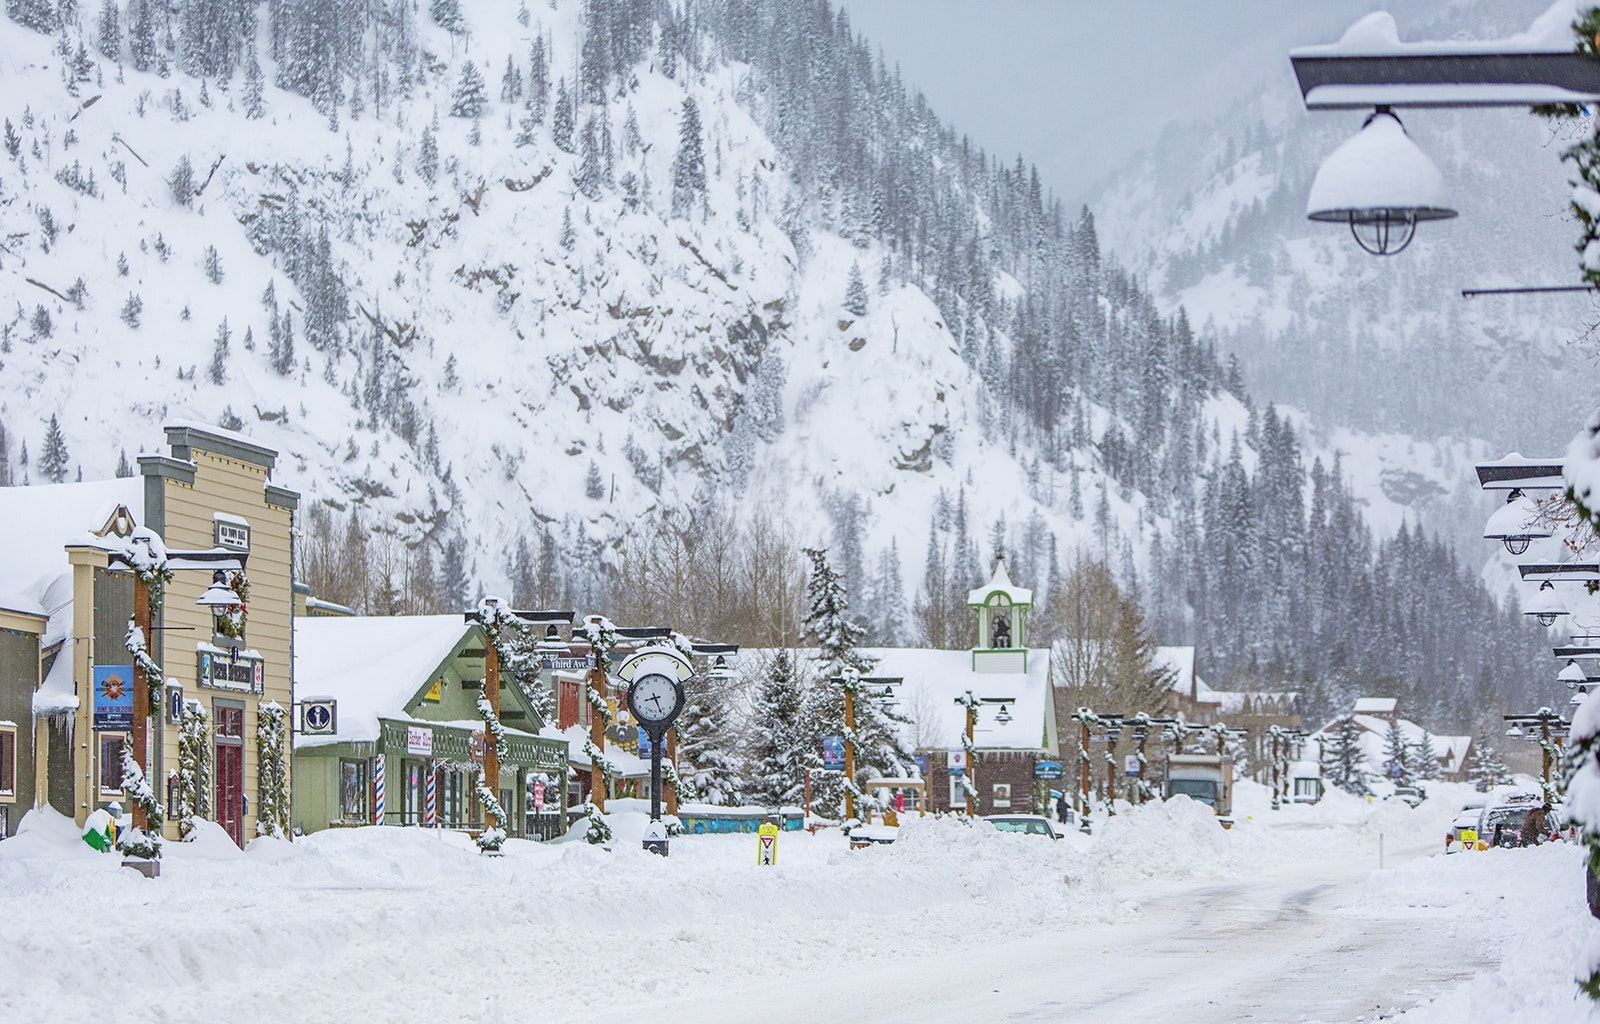 Tech-focused entrepreneurs in Frisco, Colorado, have access to six different ski resorts.